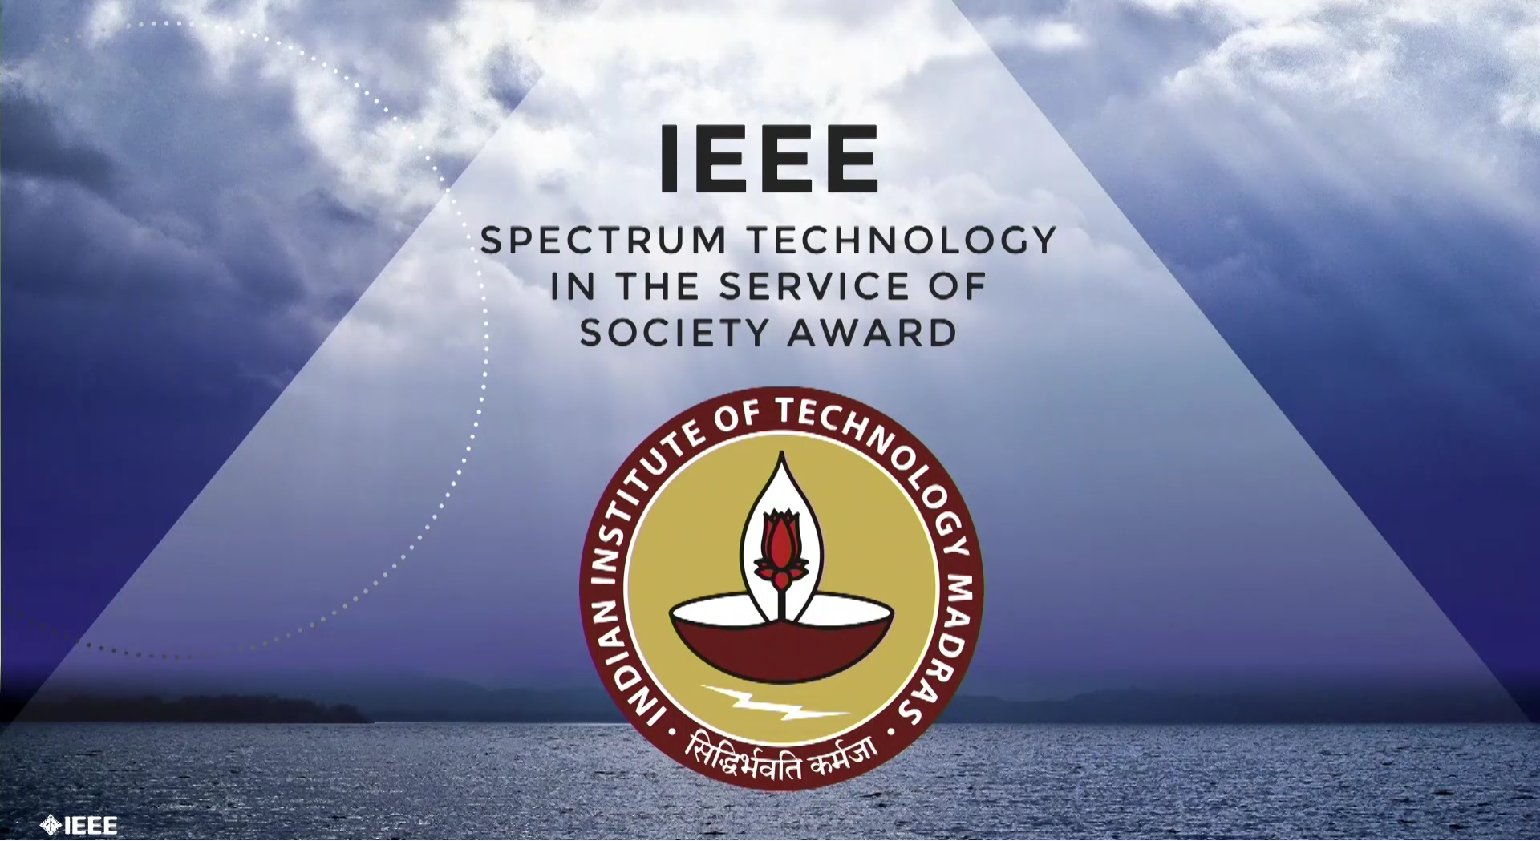 Indian Institute of Technology Madras accepts the Spectrum Technology in the Service of Society Award - Honors Ceremony 2017